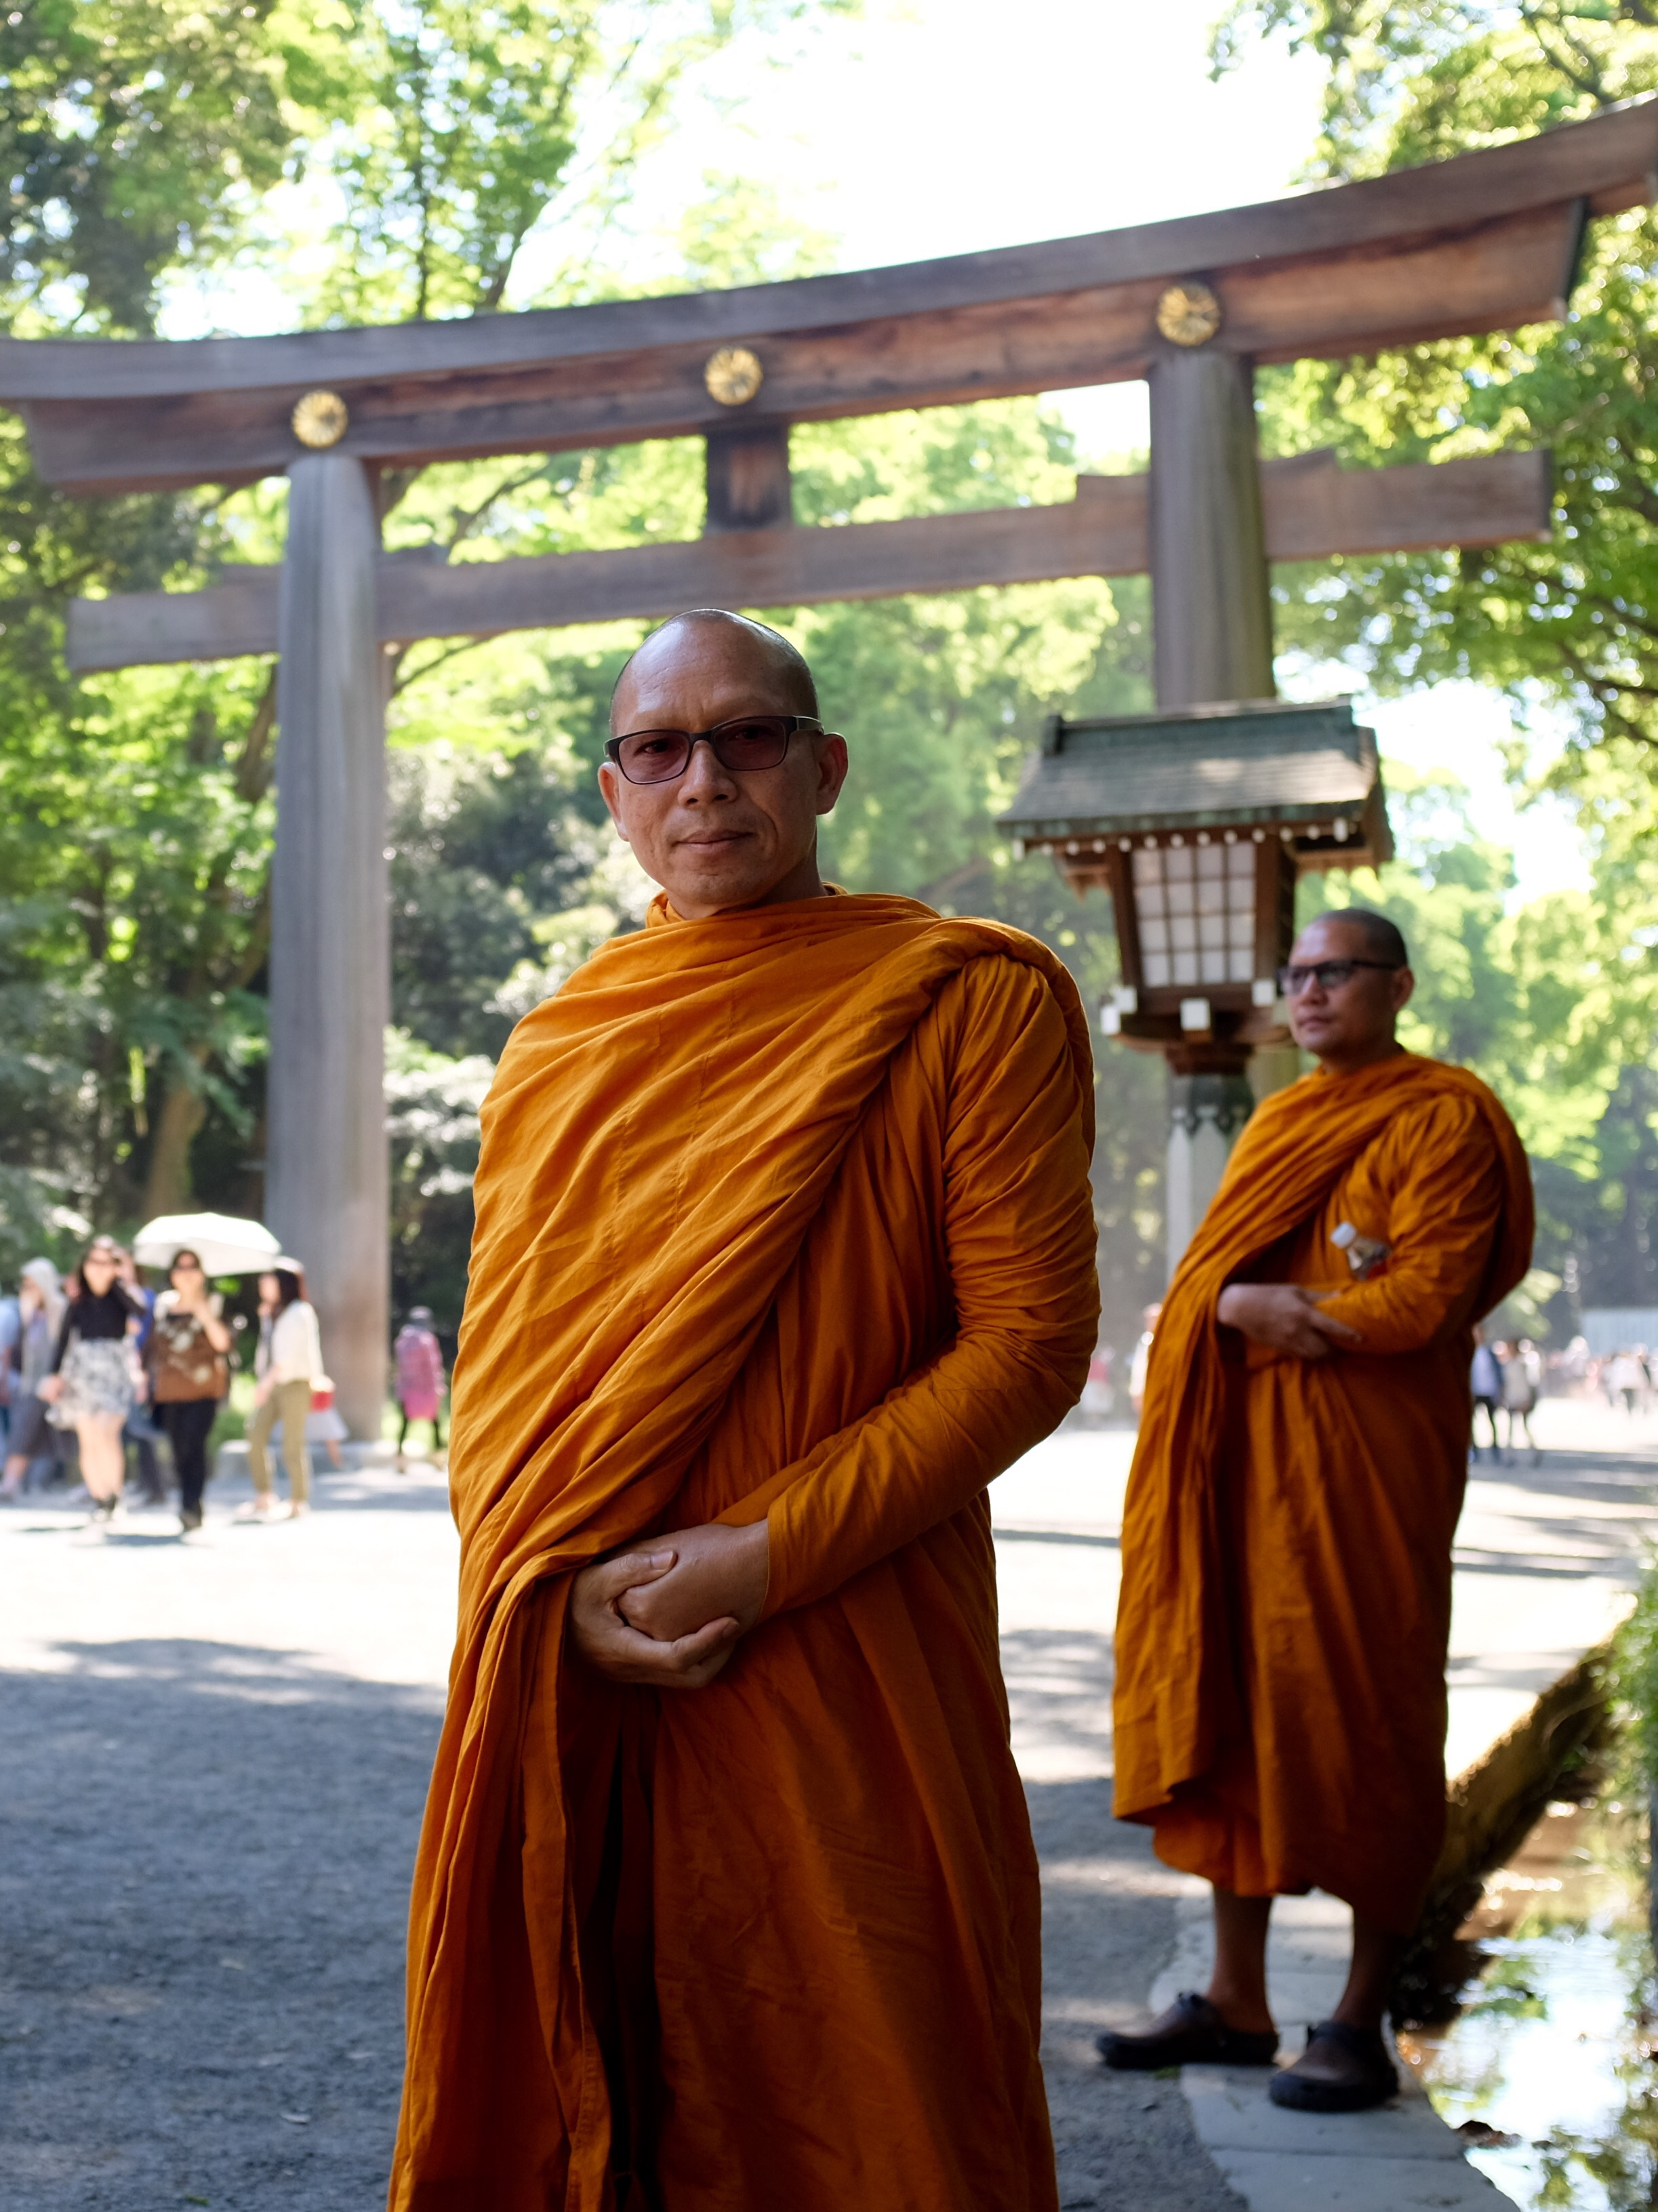 Monks at Meiji Shrine, Tokyo. Fujifilm x100t, ISO 400, f/2.8, 1/400 sec. ND filter on. Cropped and added some contrast.